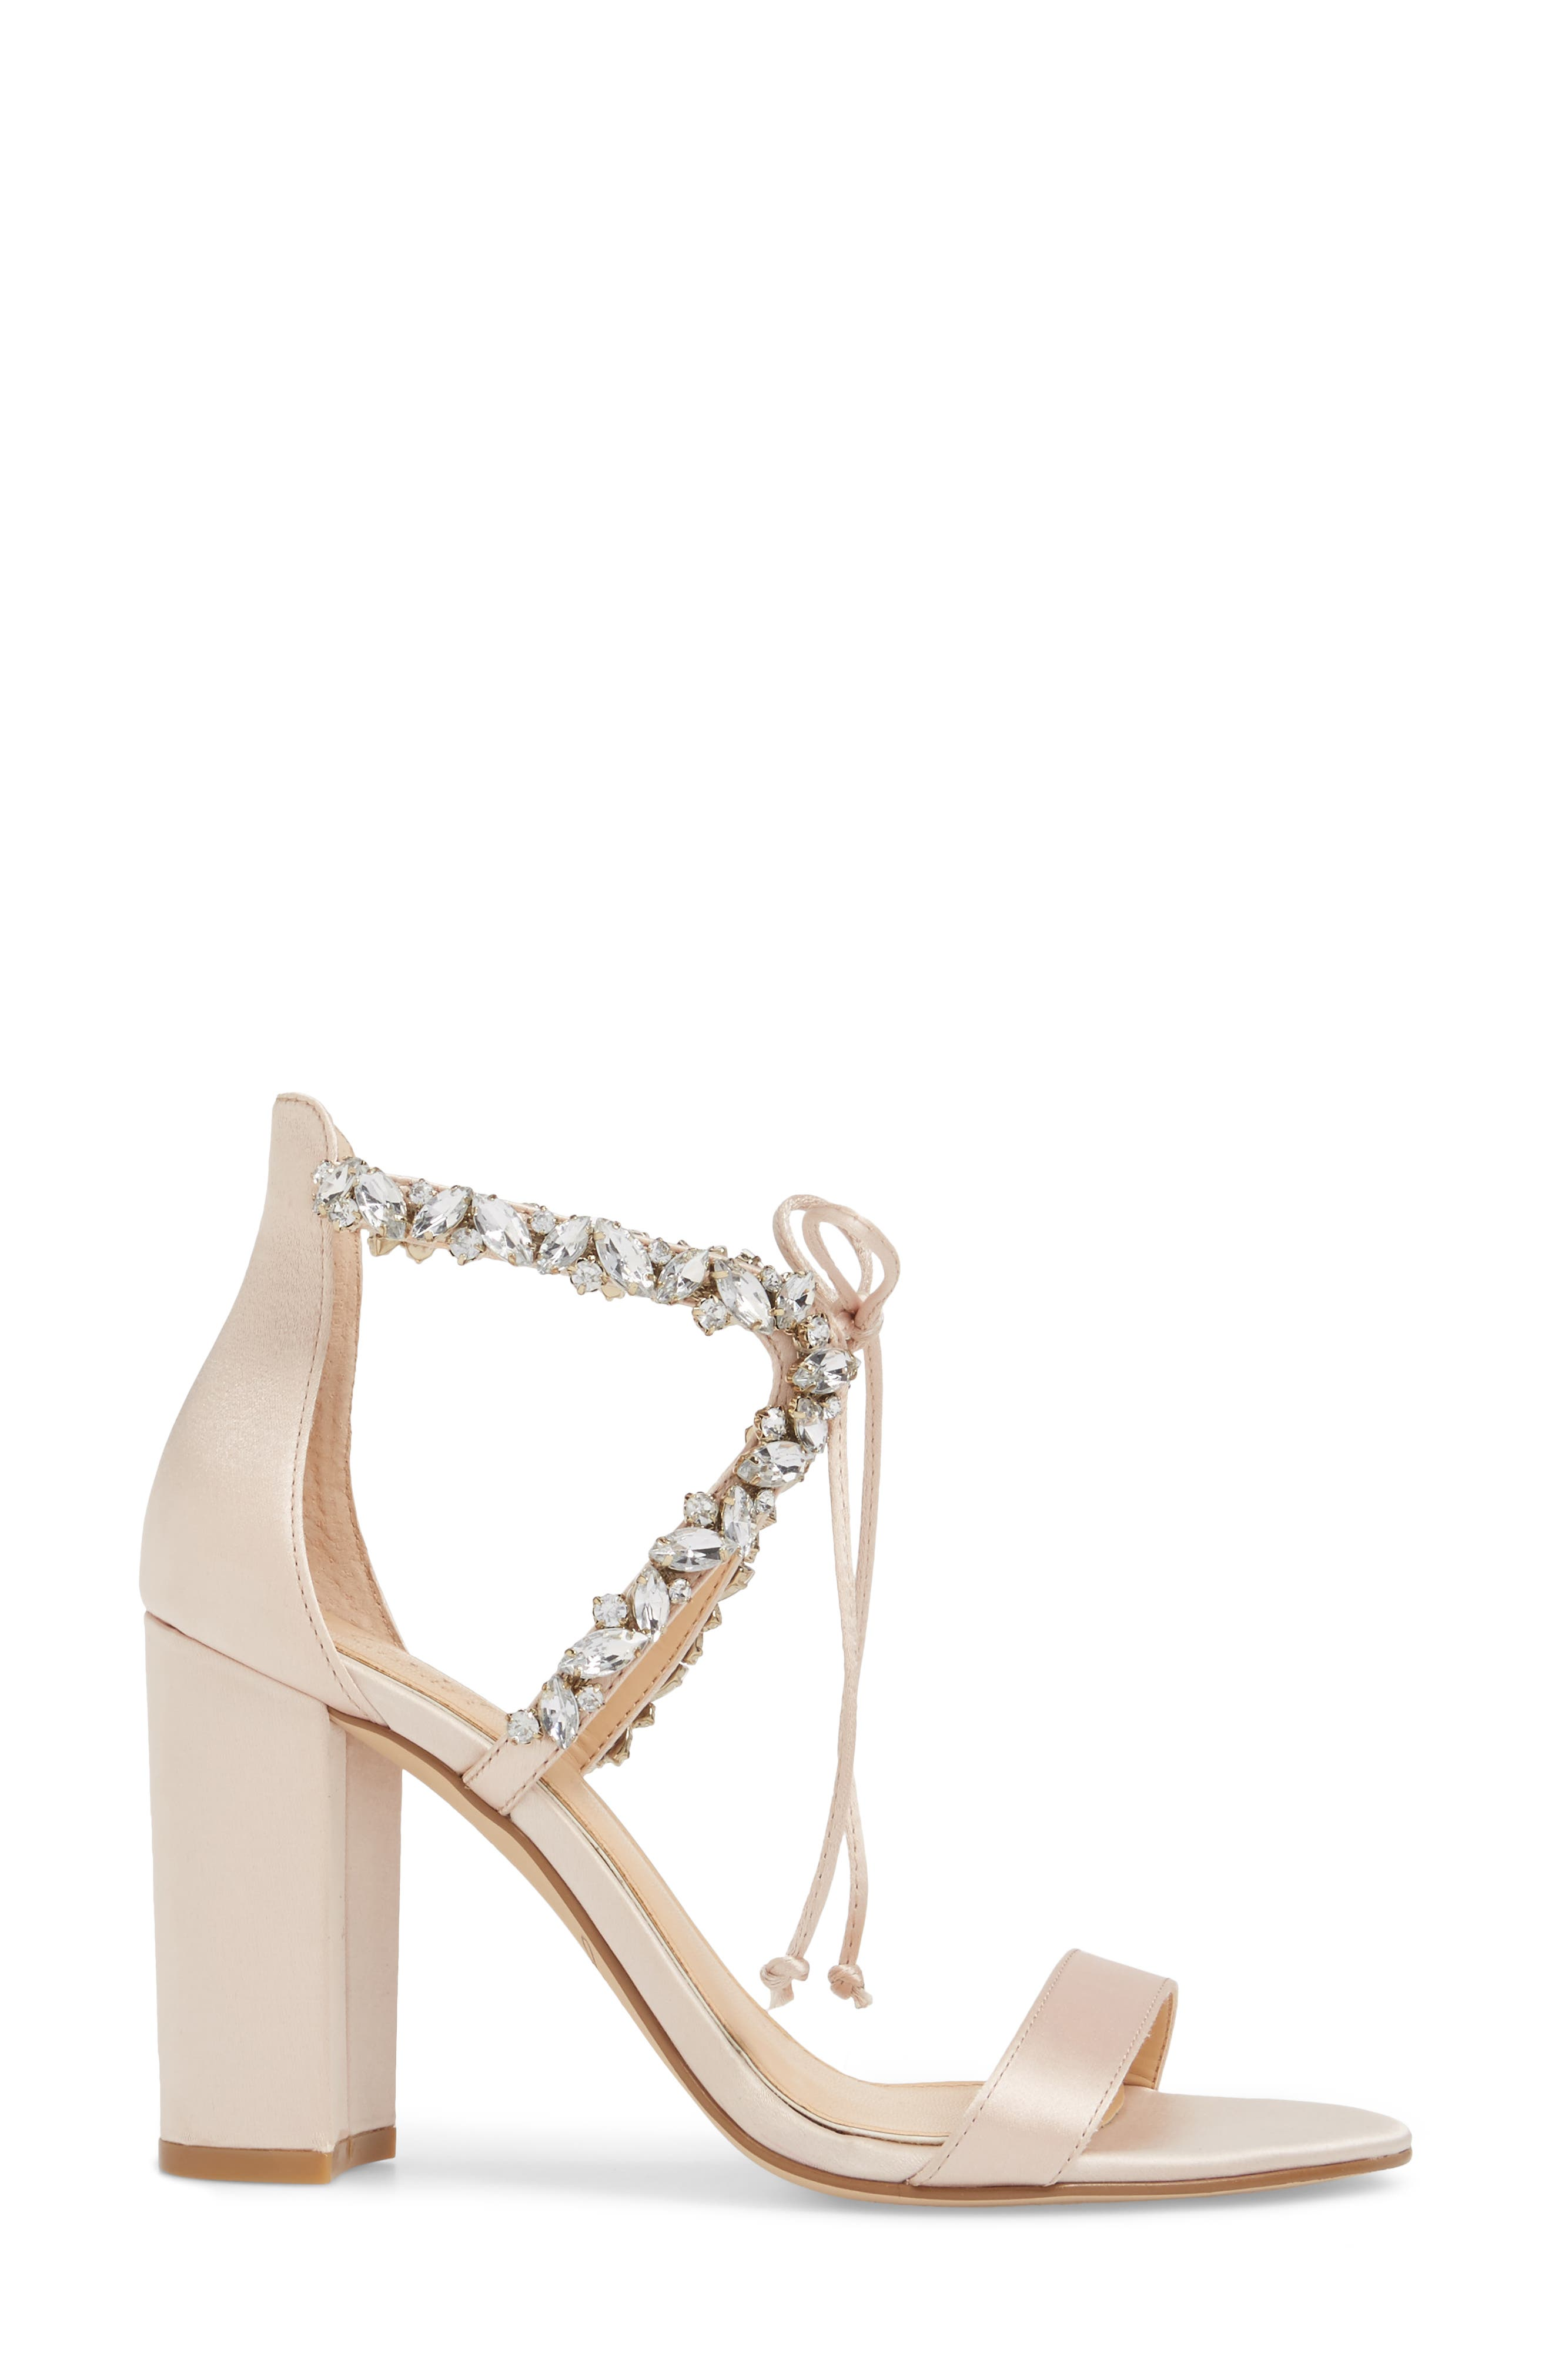 JEWEL BADGLEY MISCHKA,                             Thamar Embellished Sandal,                             Alternate thumbnail 3, color,                             CHAMPAGNE SATIN